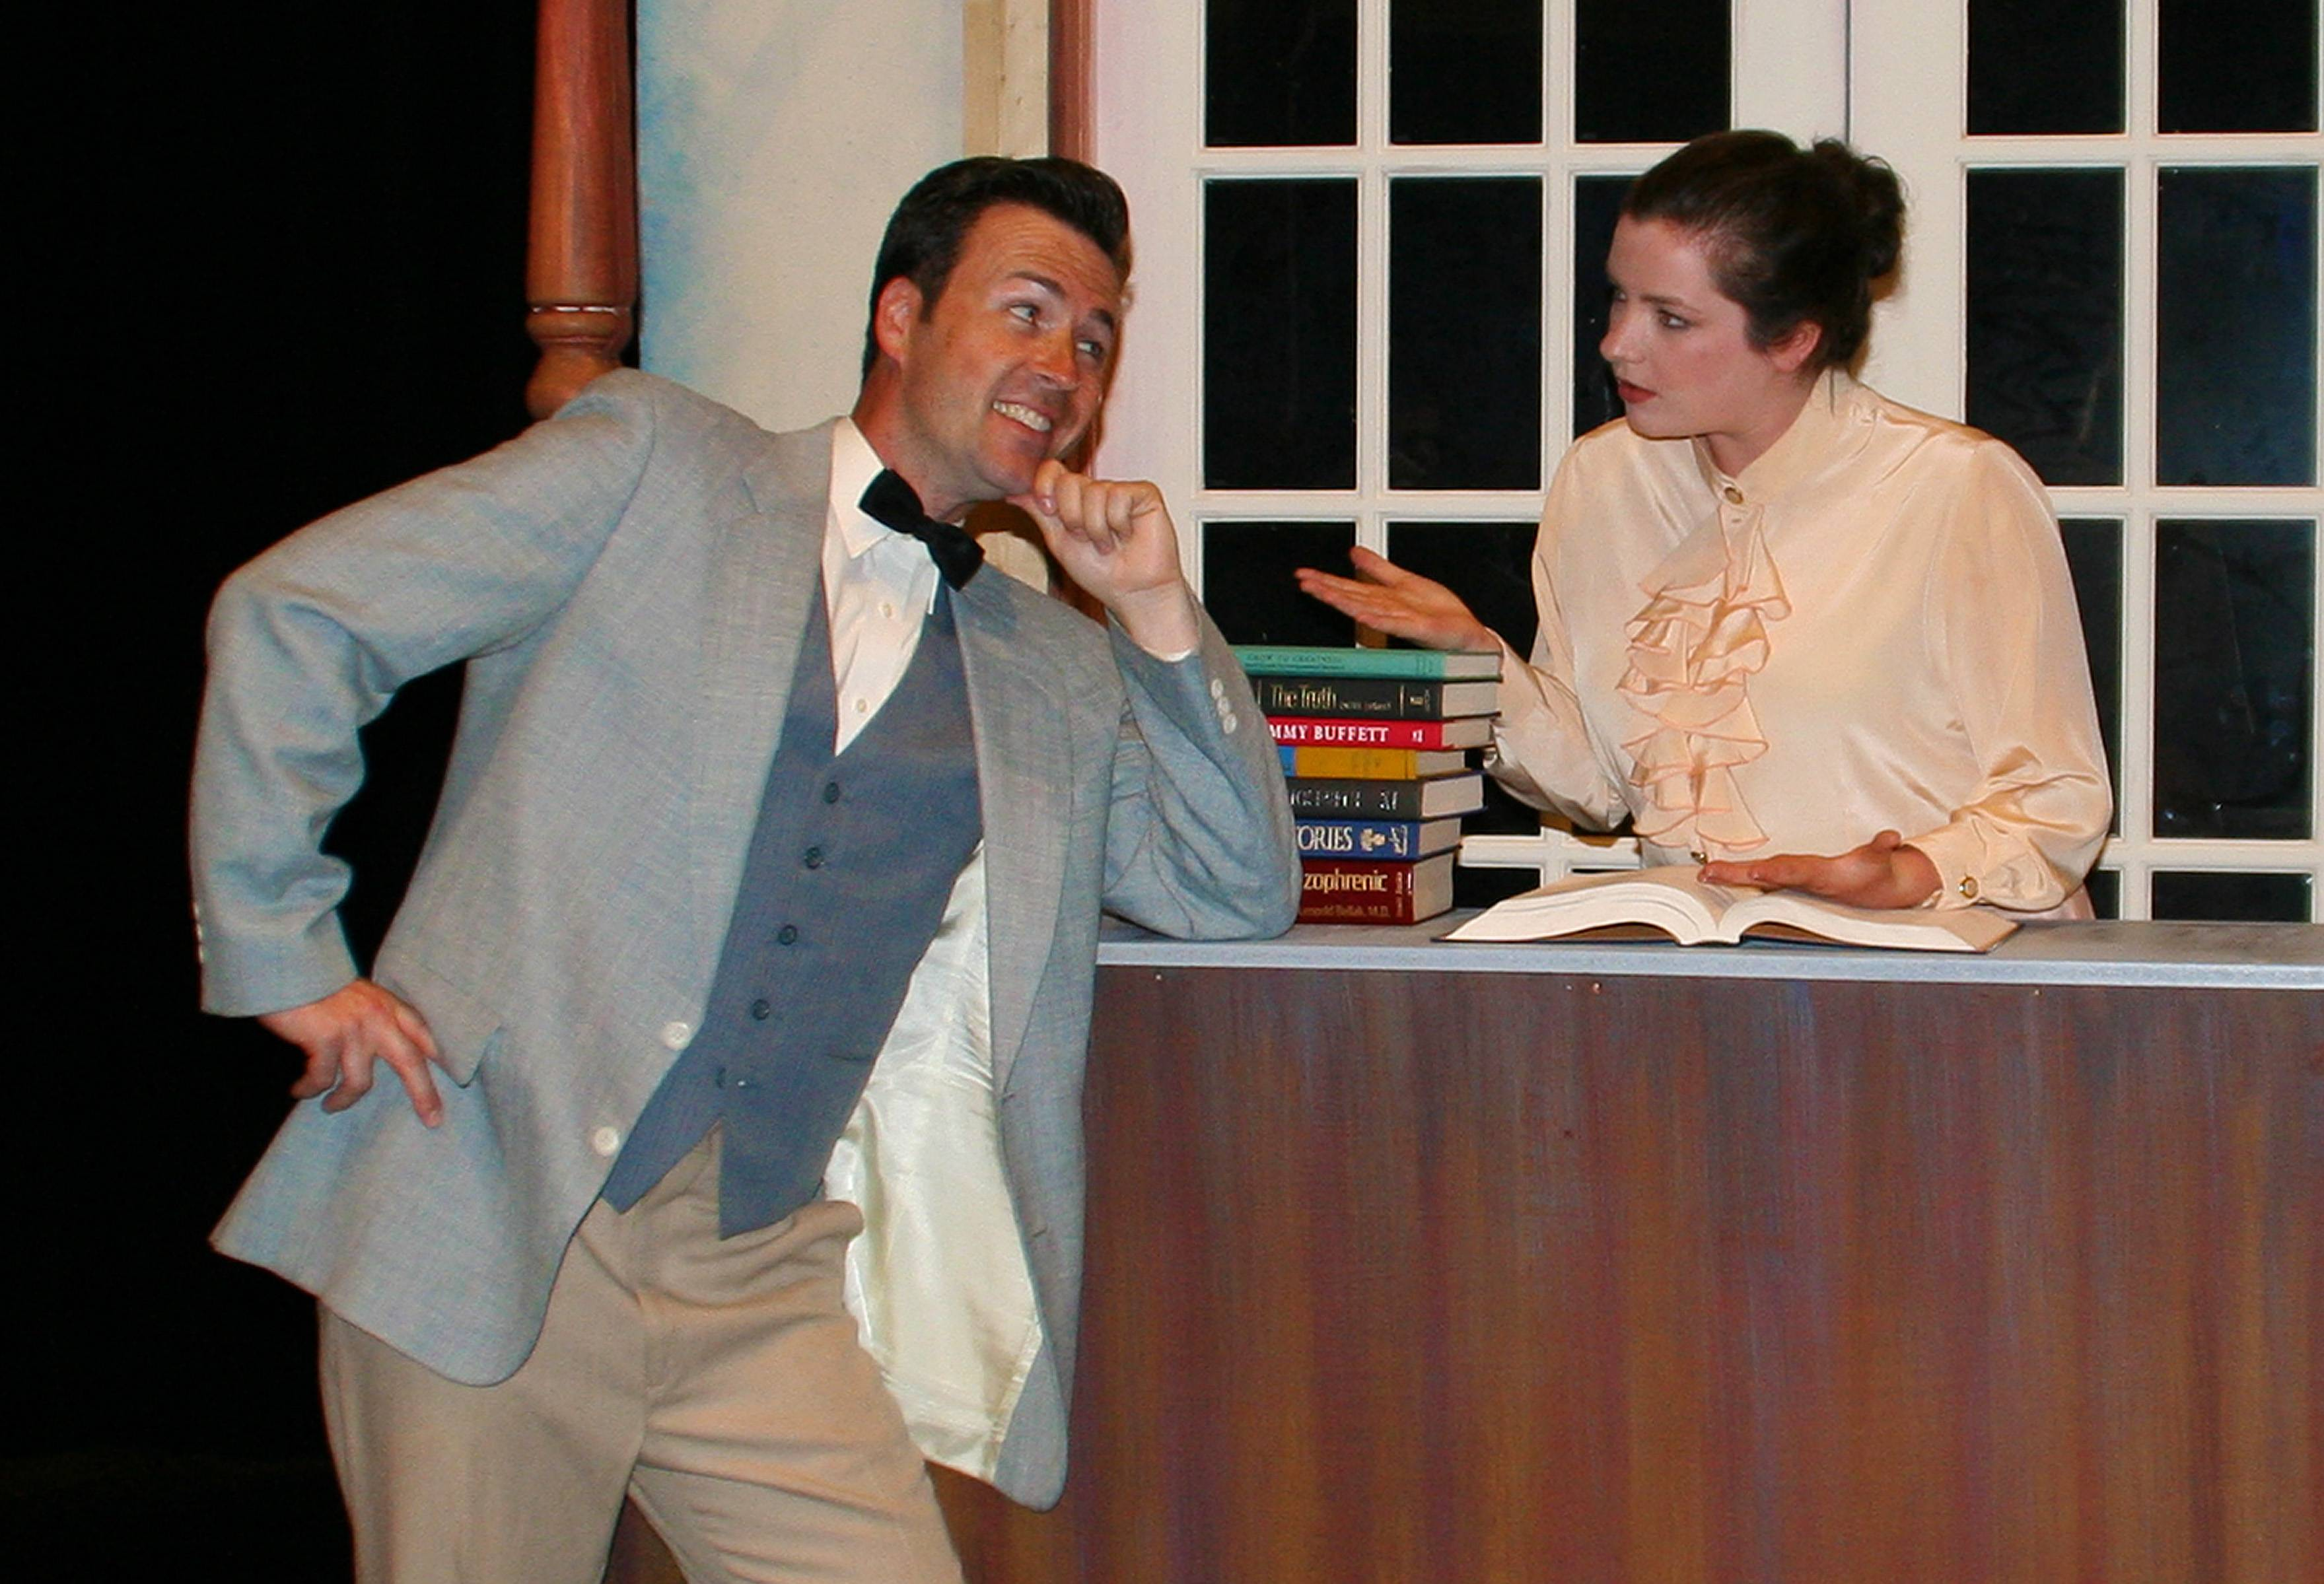 Jason Bowen (Professor Harold Hill) tries to charm Margaret Juravic (Marian the Librarian) in the Footlighters Theatre Company's production of The Music Man, July 25-August 4 at the Prairie Lakes Theatre.